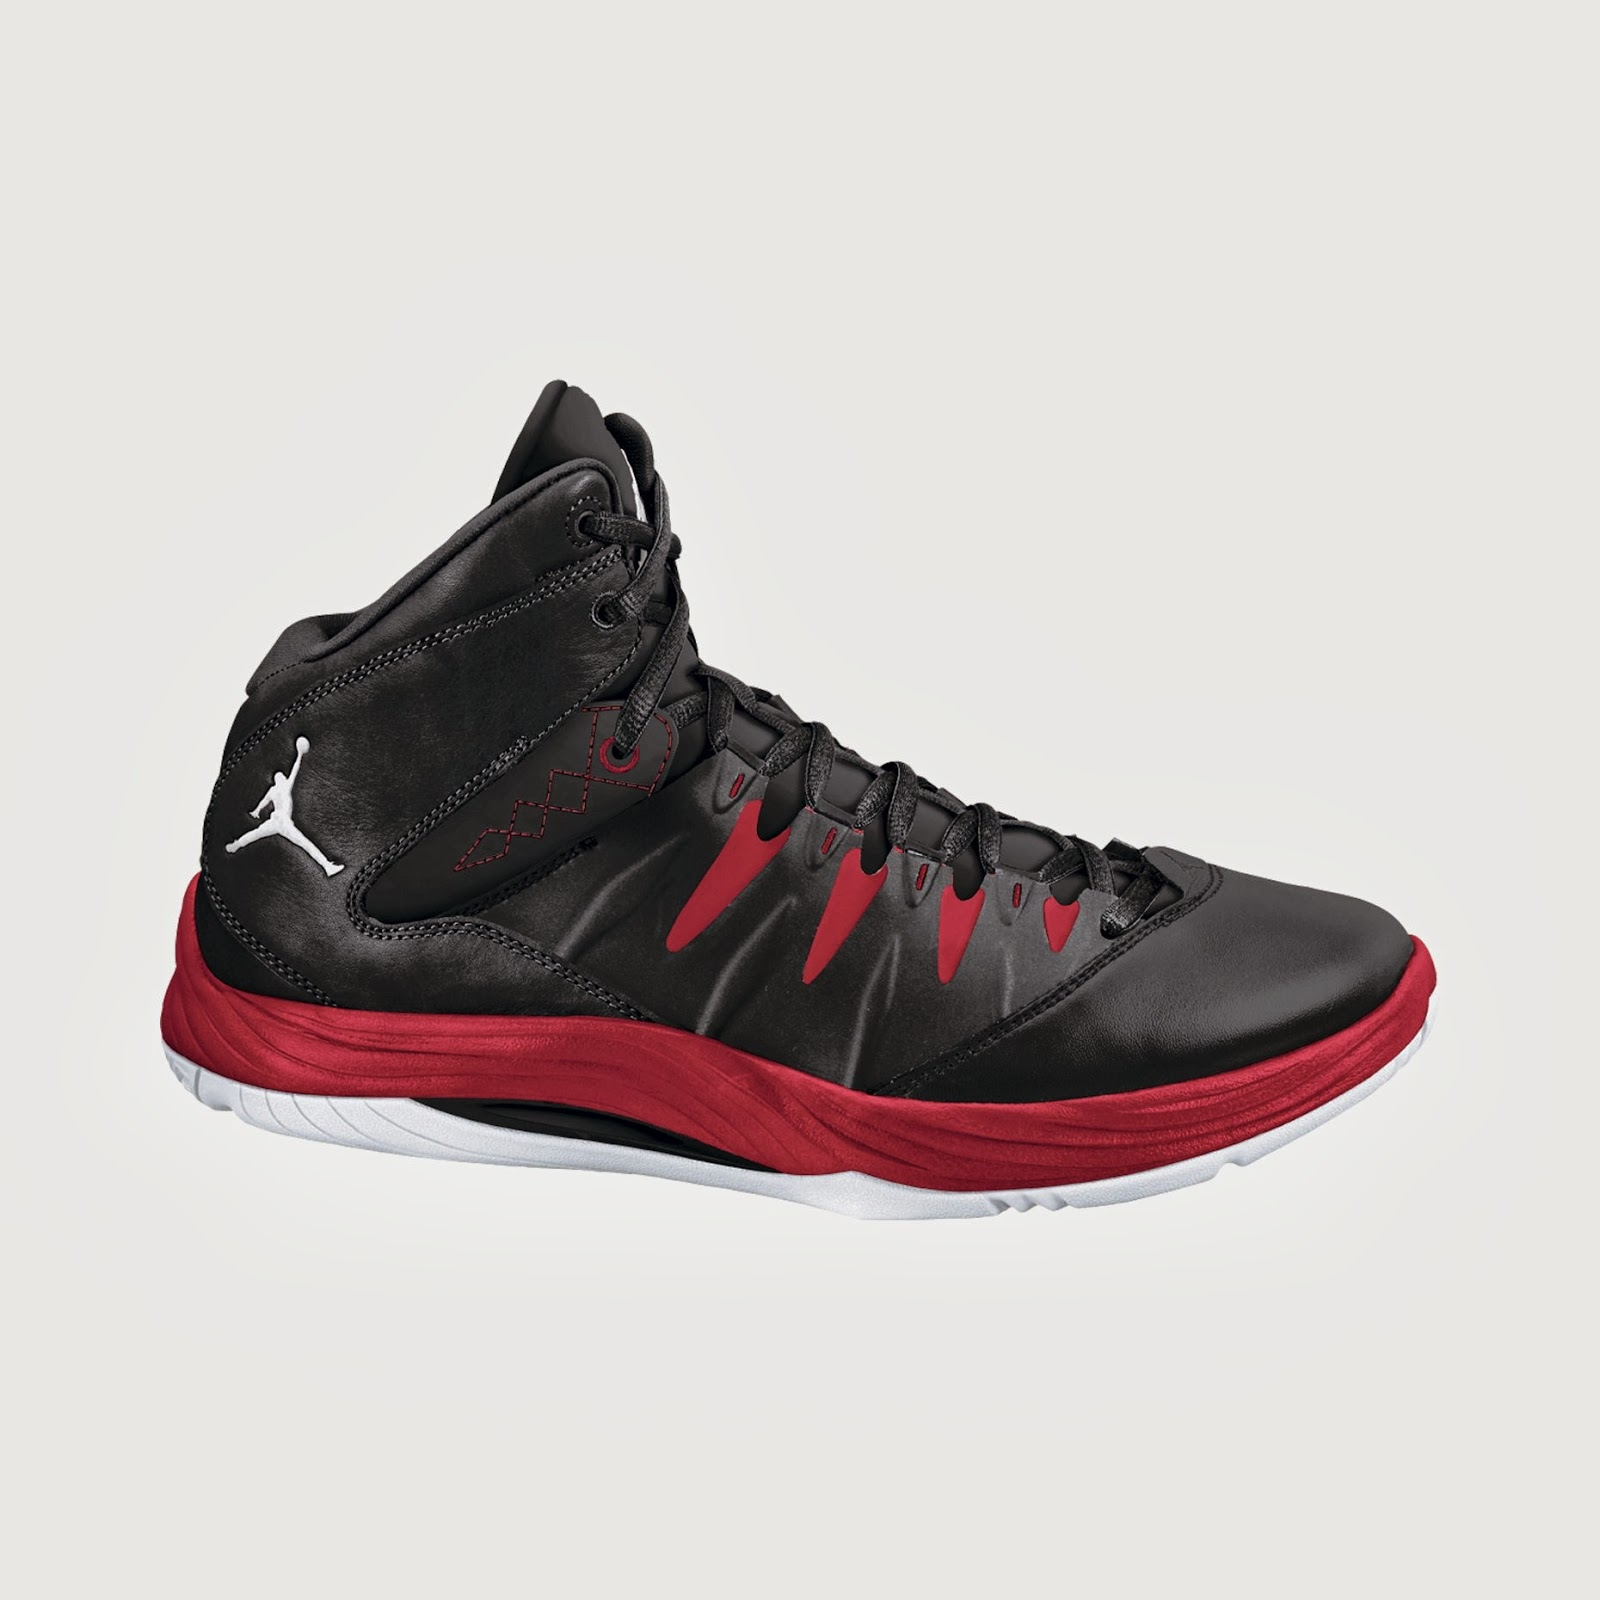 Jordan Retro  Basketball Shoes